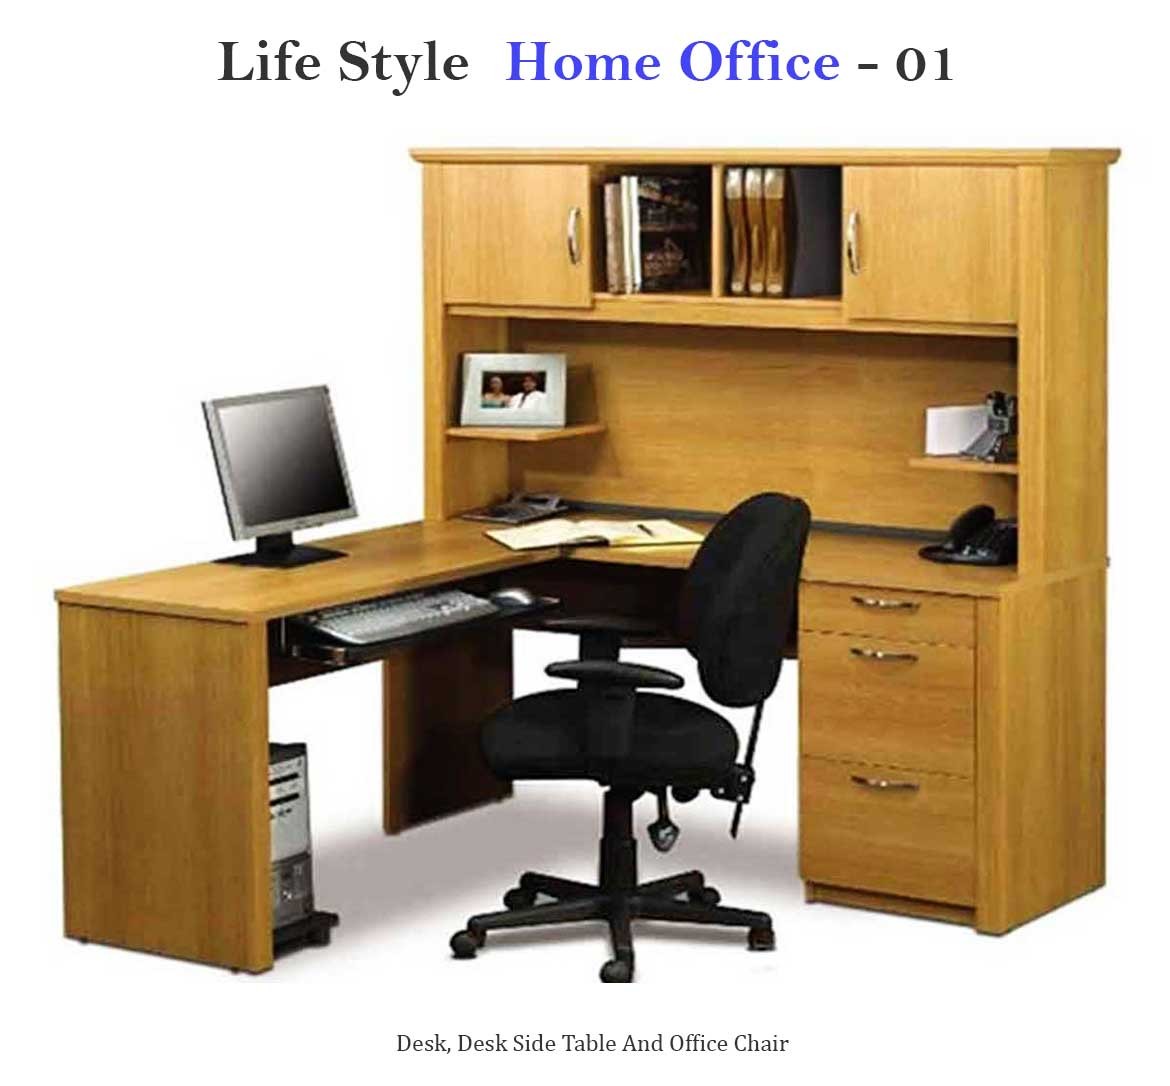 LifestyleHome Office-01